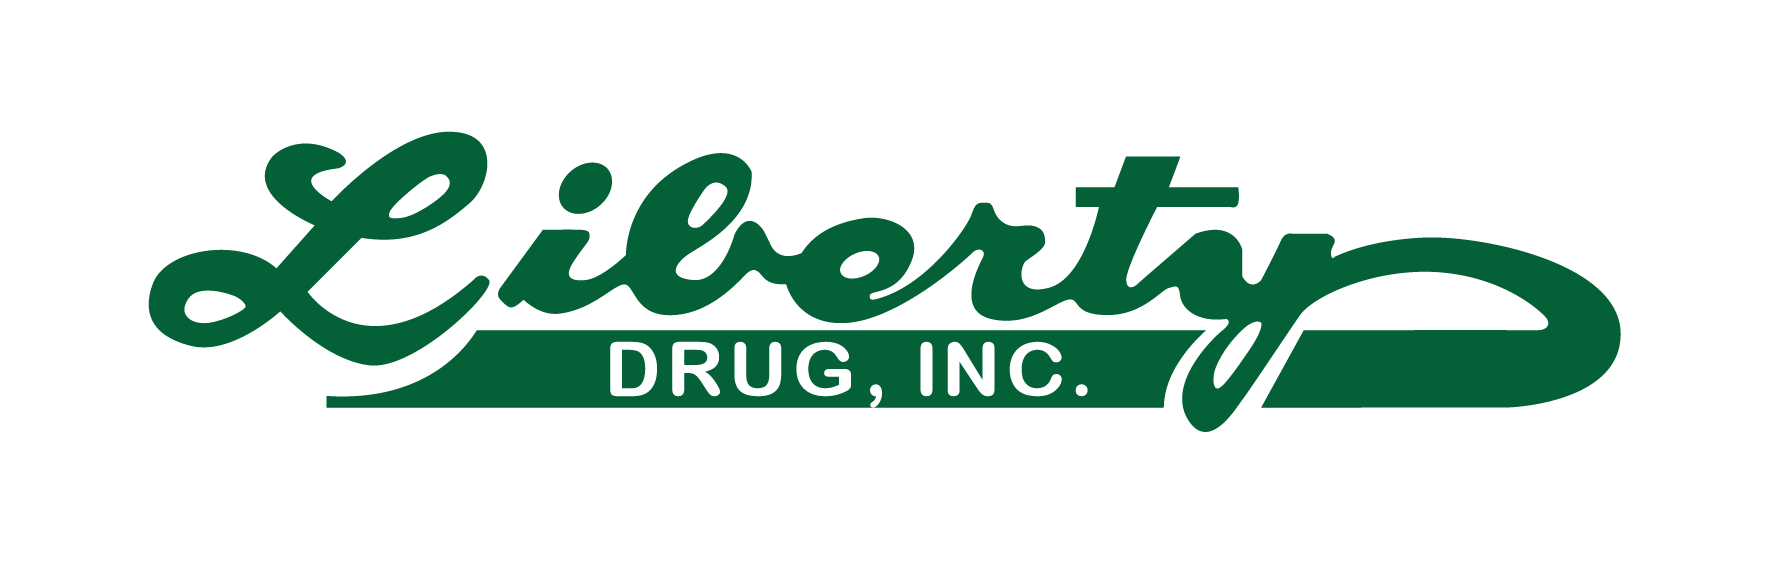 RI - Liberty Drug